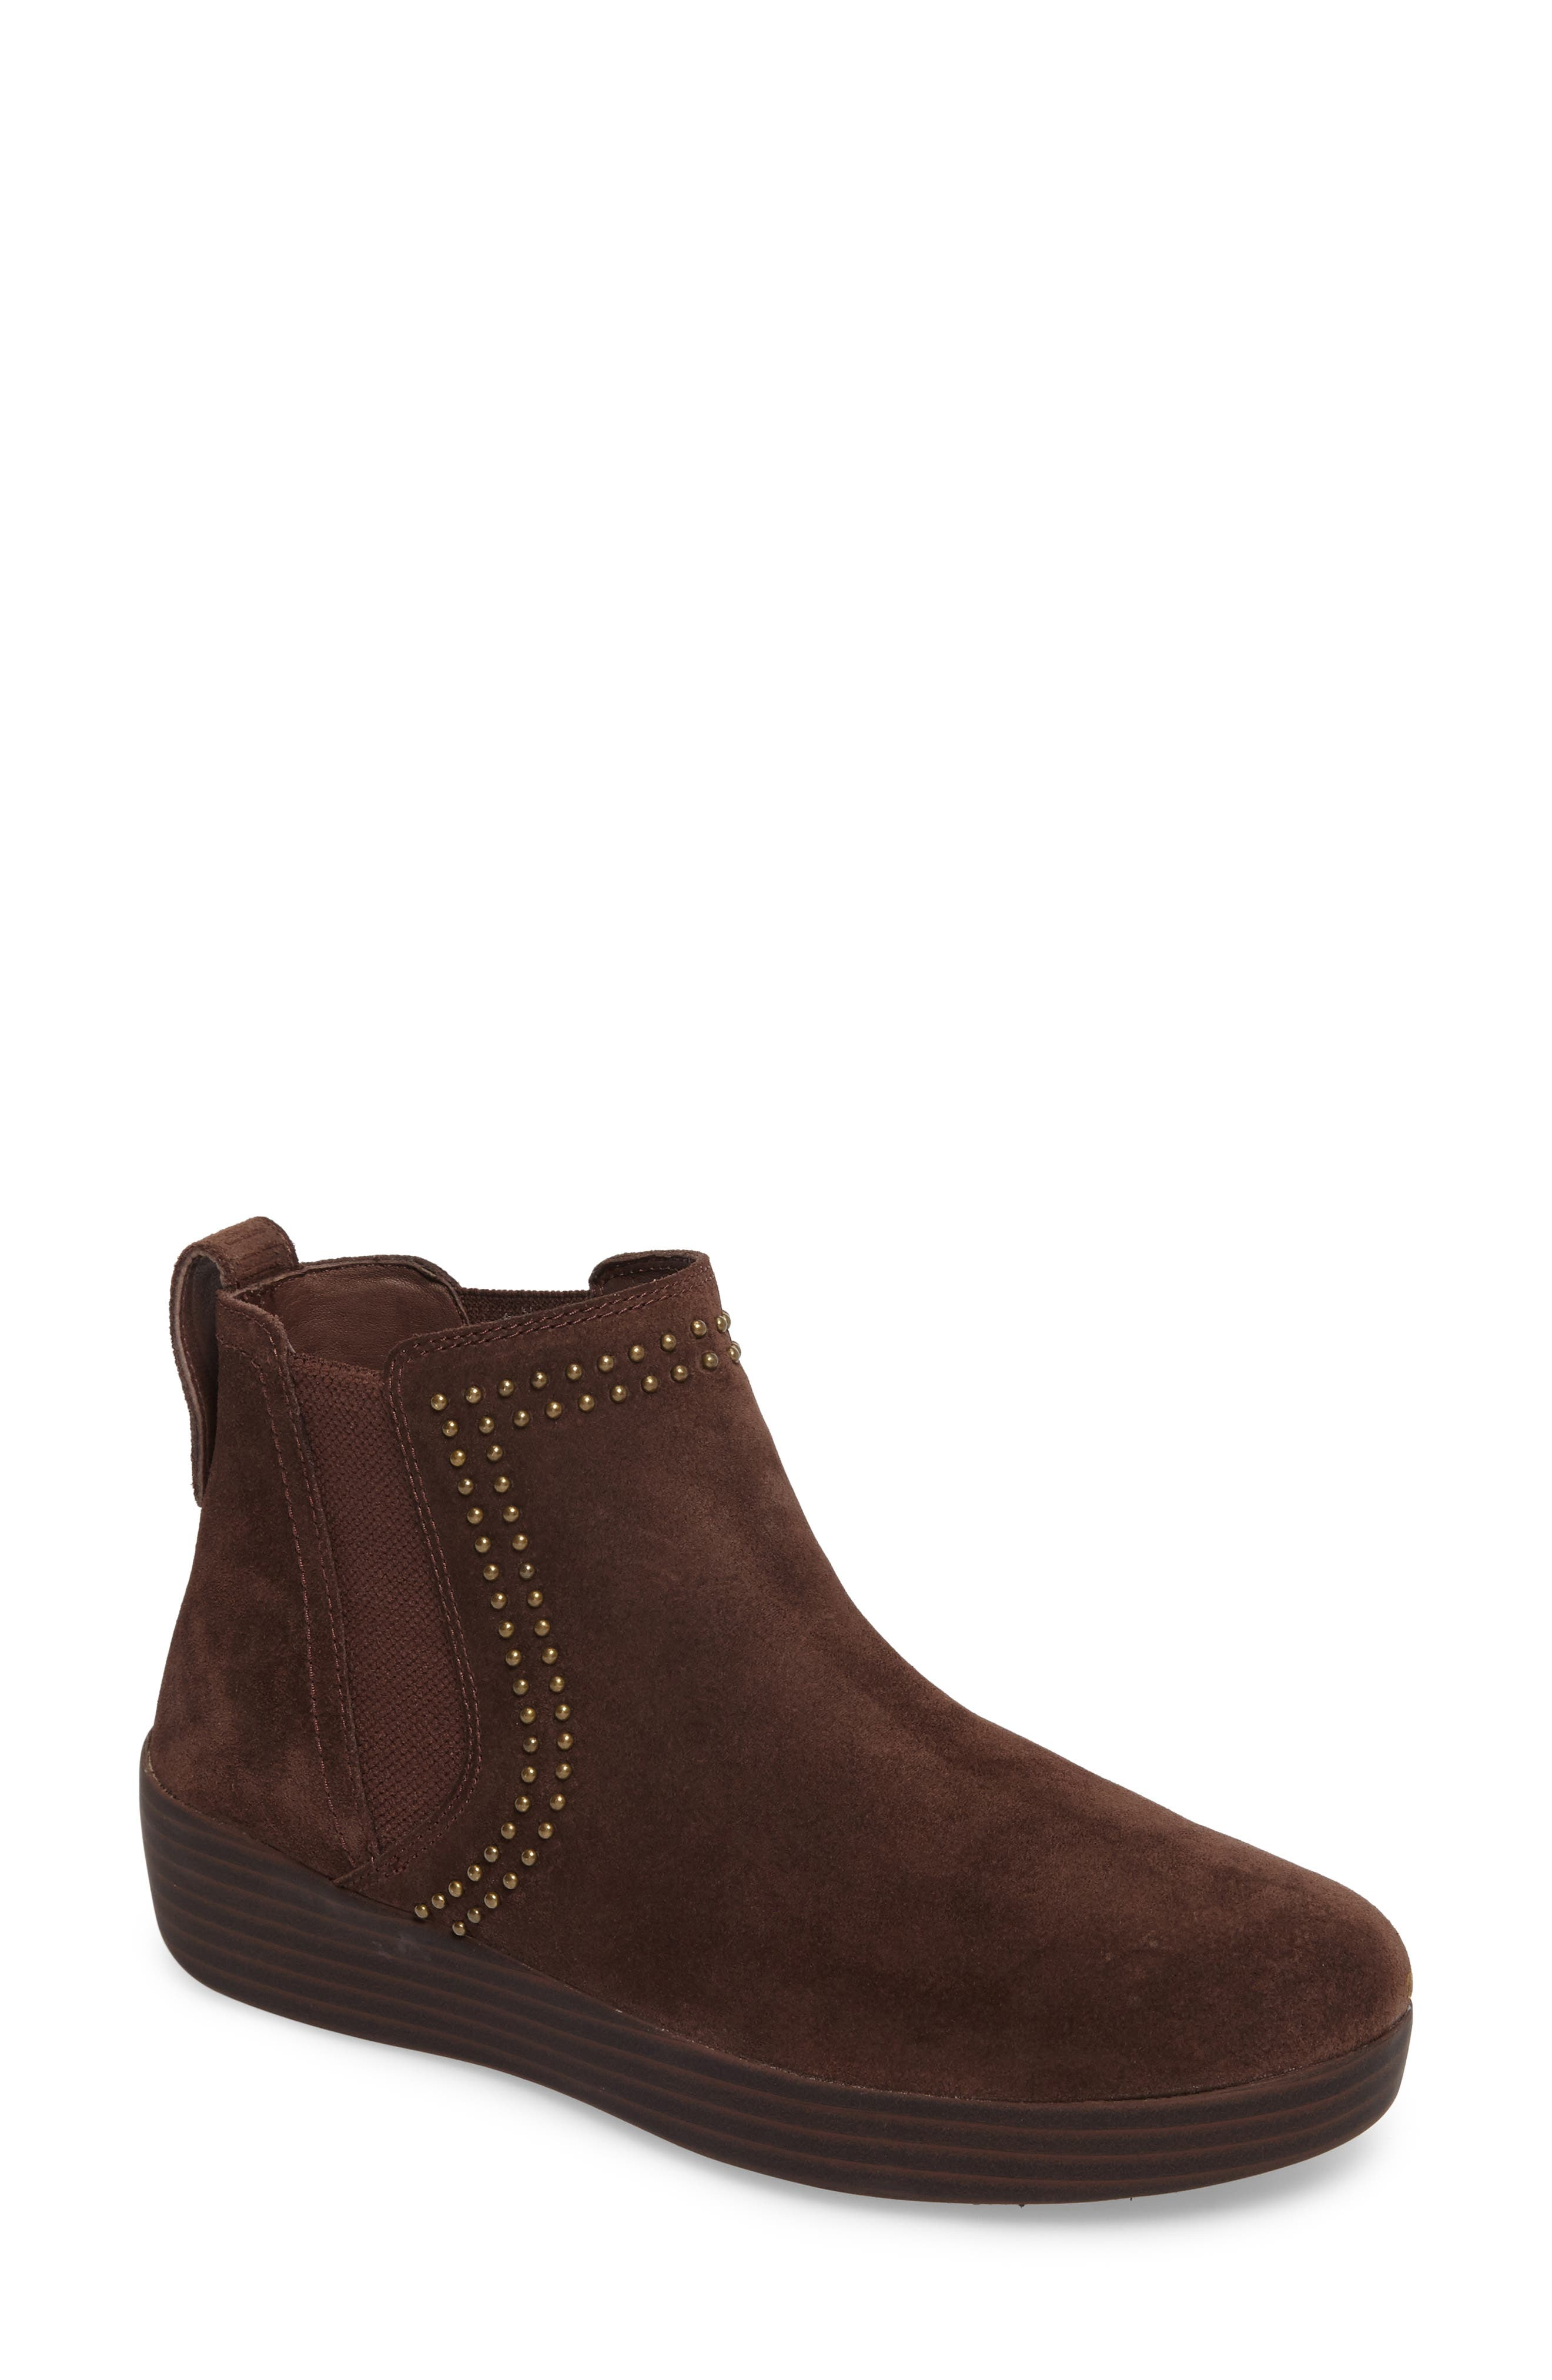 Alternate Image 1 Selected - FitFlop™ Superchelsea Studded Boot (Women)